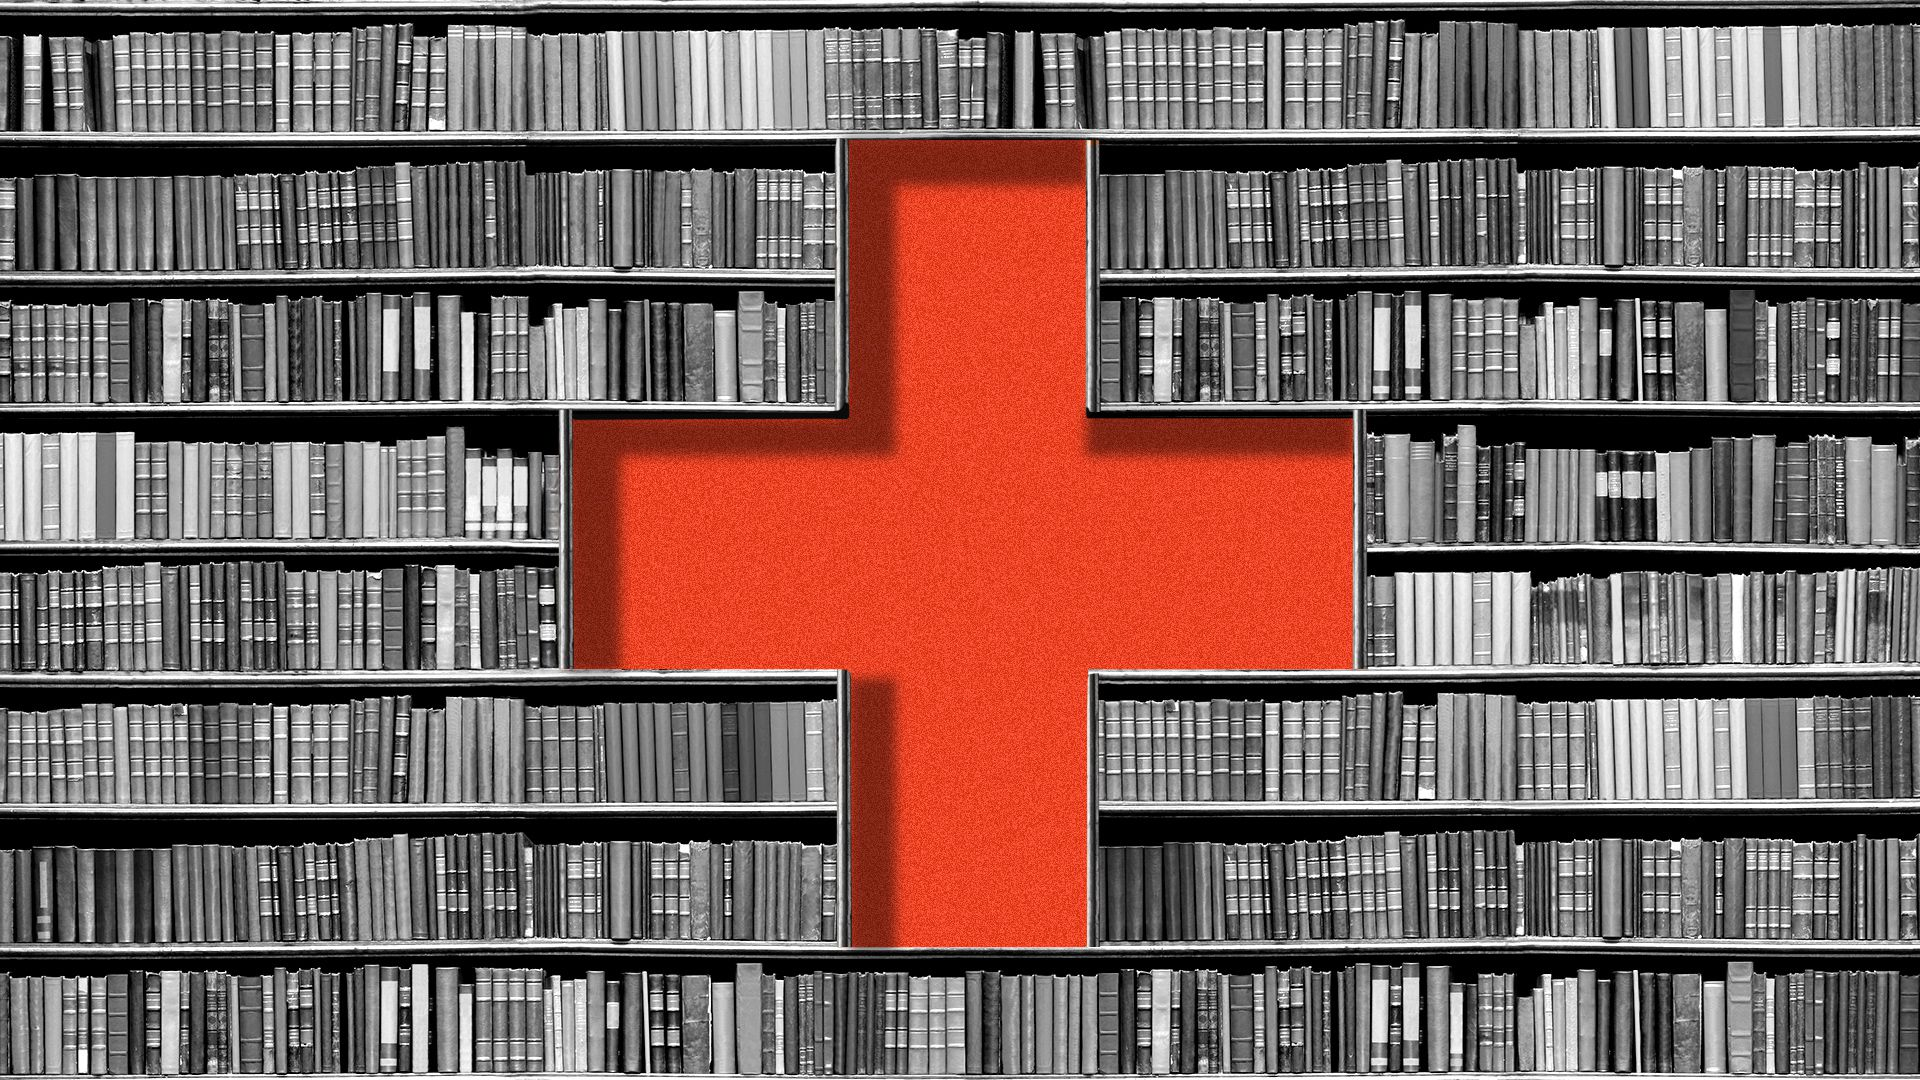 Public libraries are now mental health resource centers